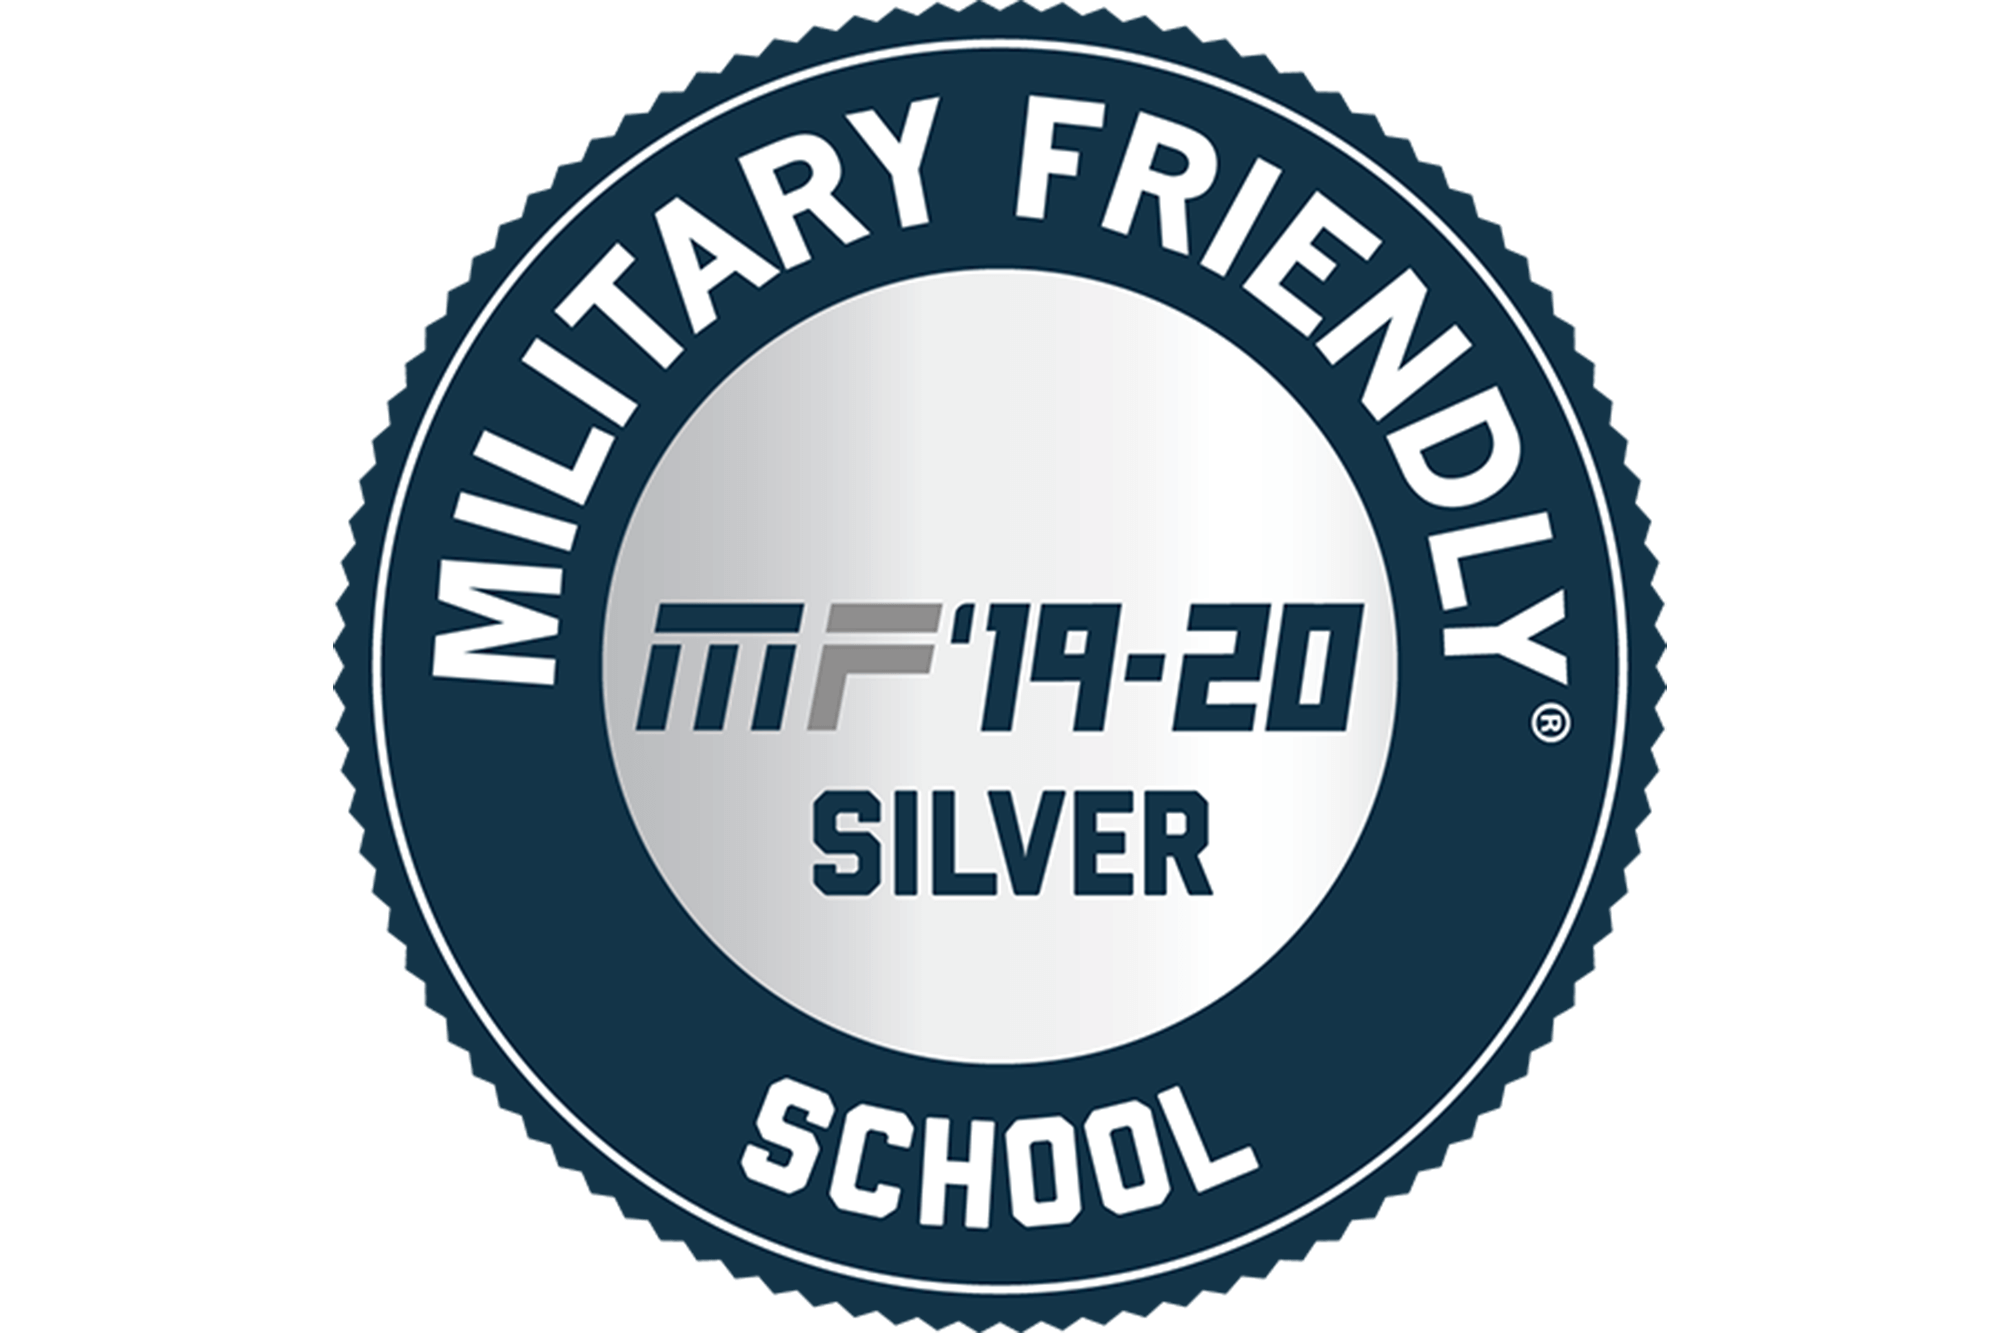 Image of the Military Friendly silver school designation logo.